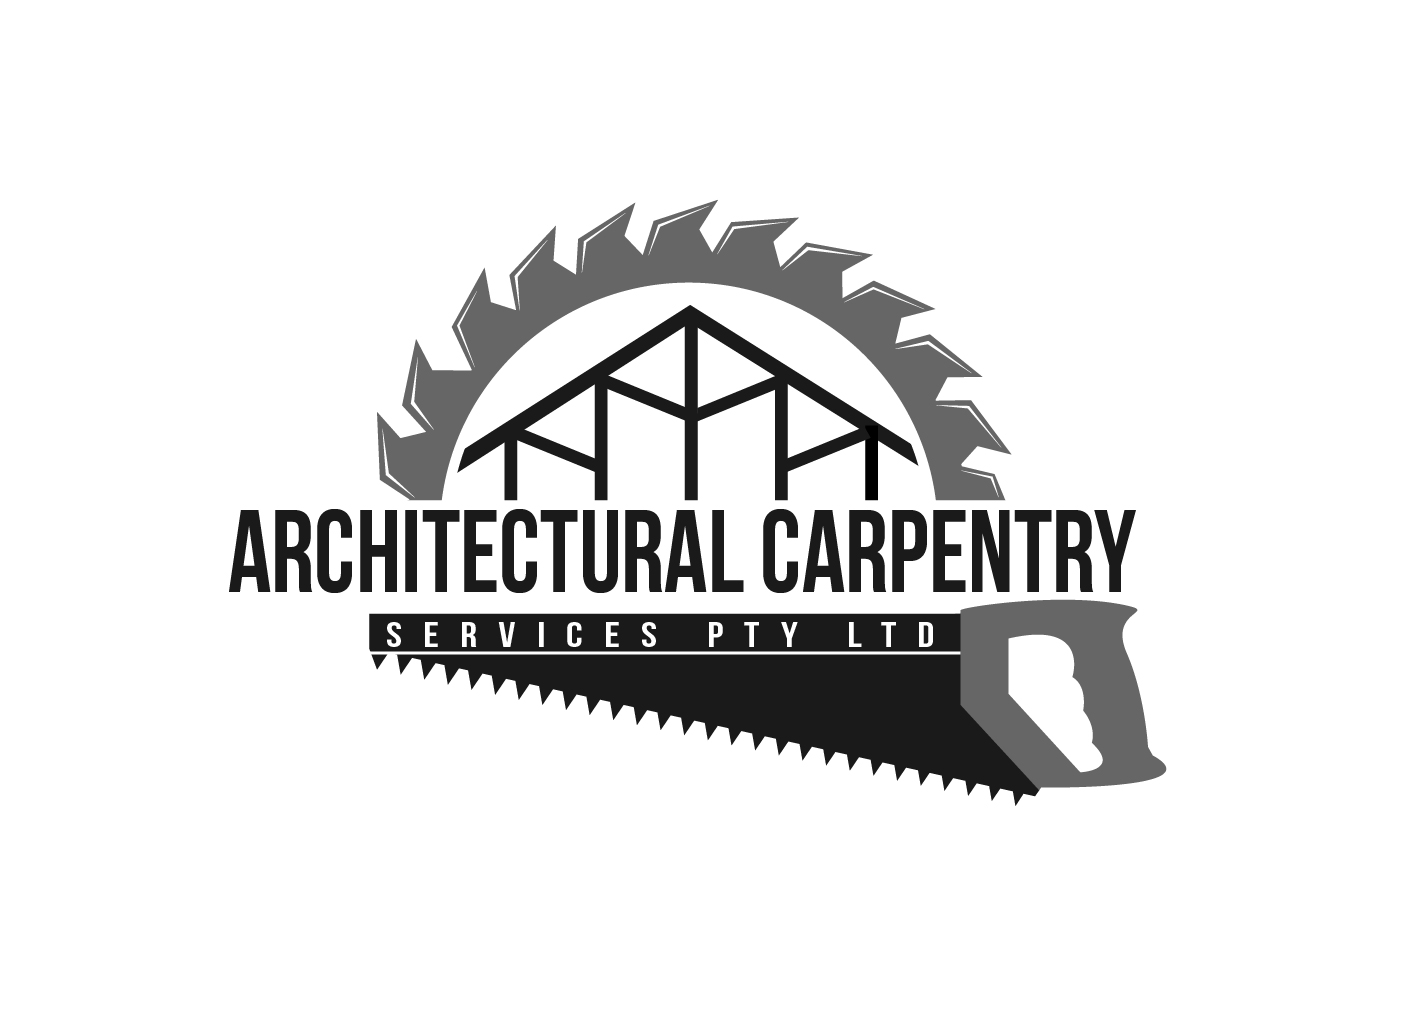 residential logo design for architectural carpentry services pty ltd by hih7 design 6092493. Black Bedroom Furniture Sets. Home Design Ideas